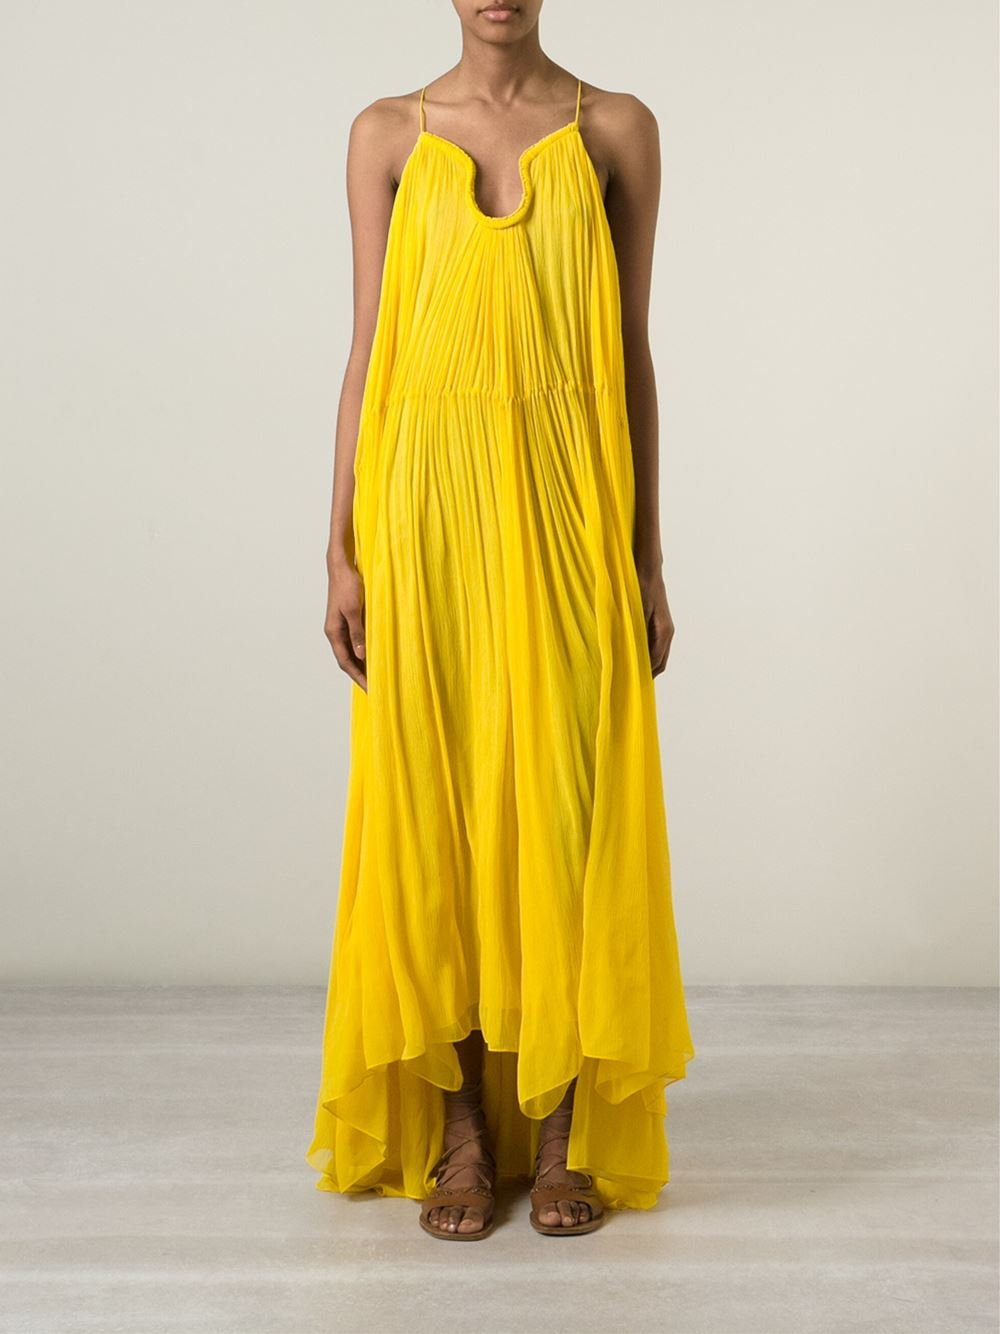 Chloé yellow full length draped dress